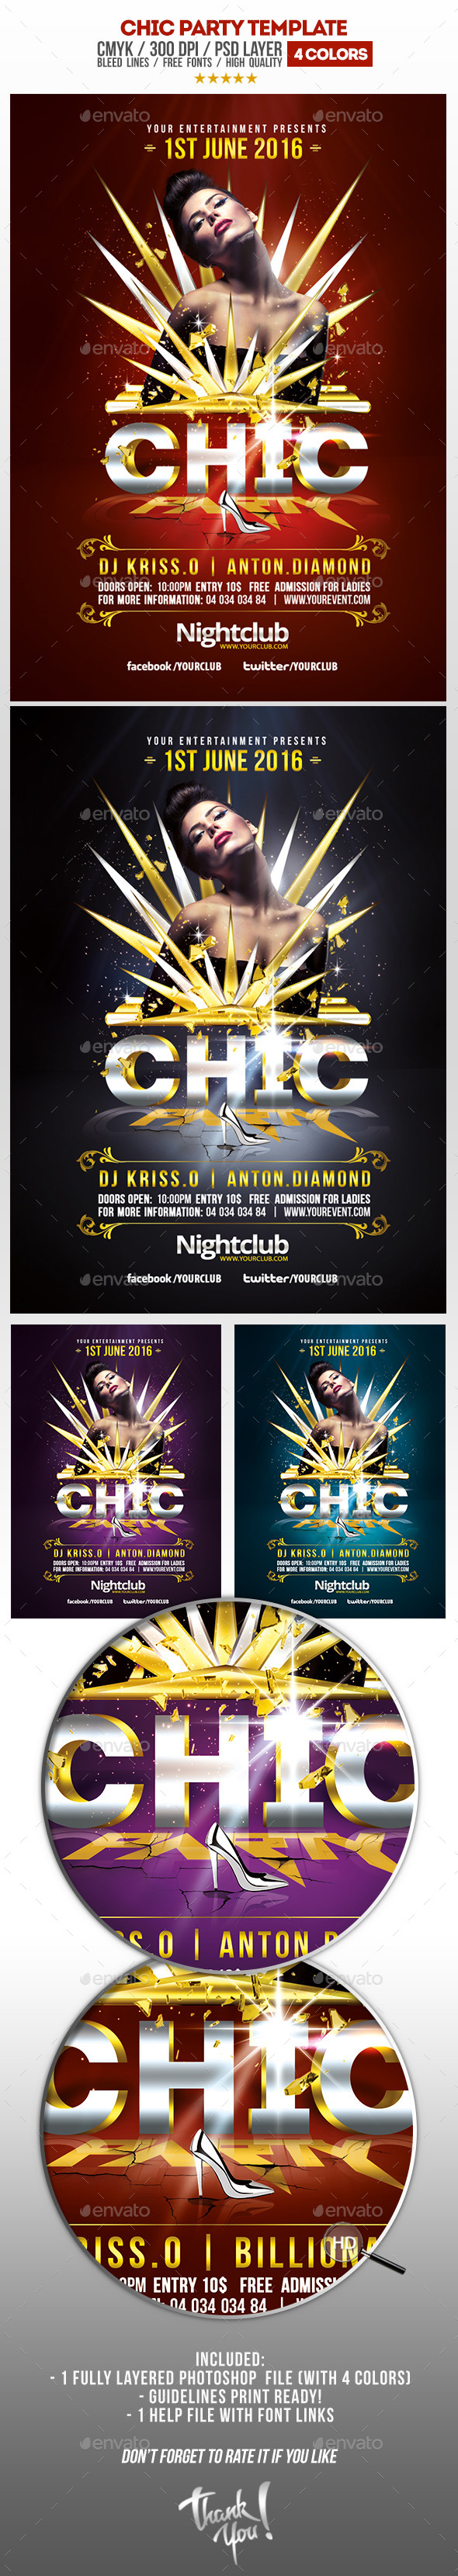 Chic Party Psd Flyer Template - Clubs & Parties Events